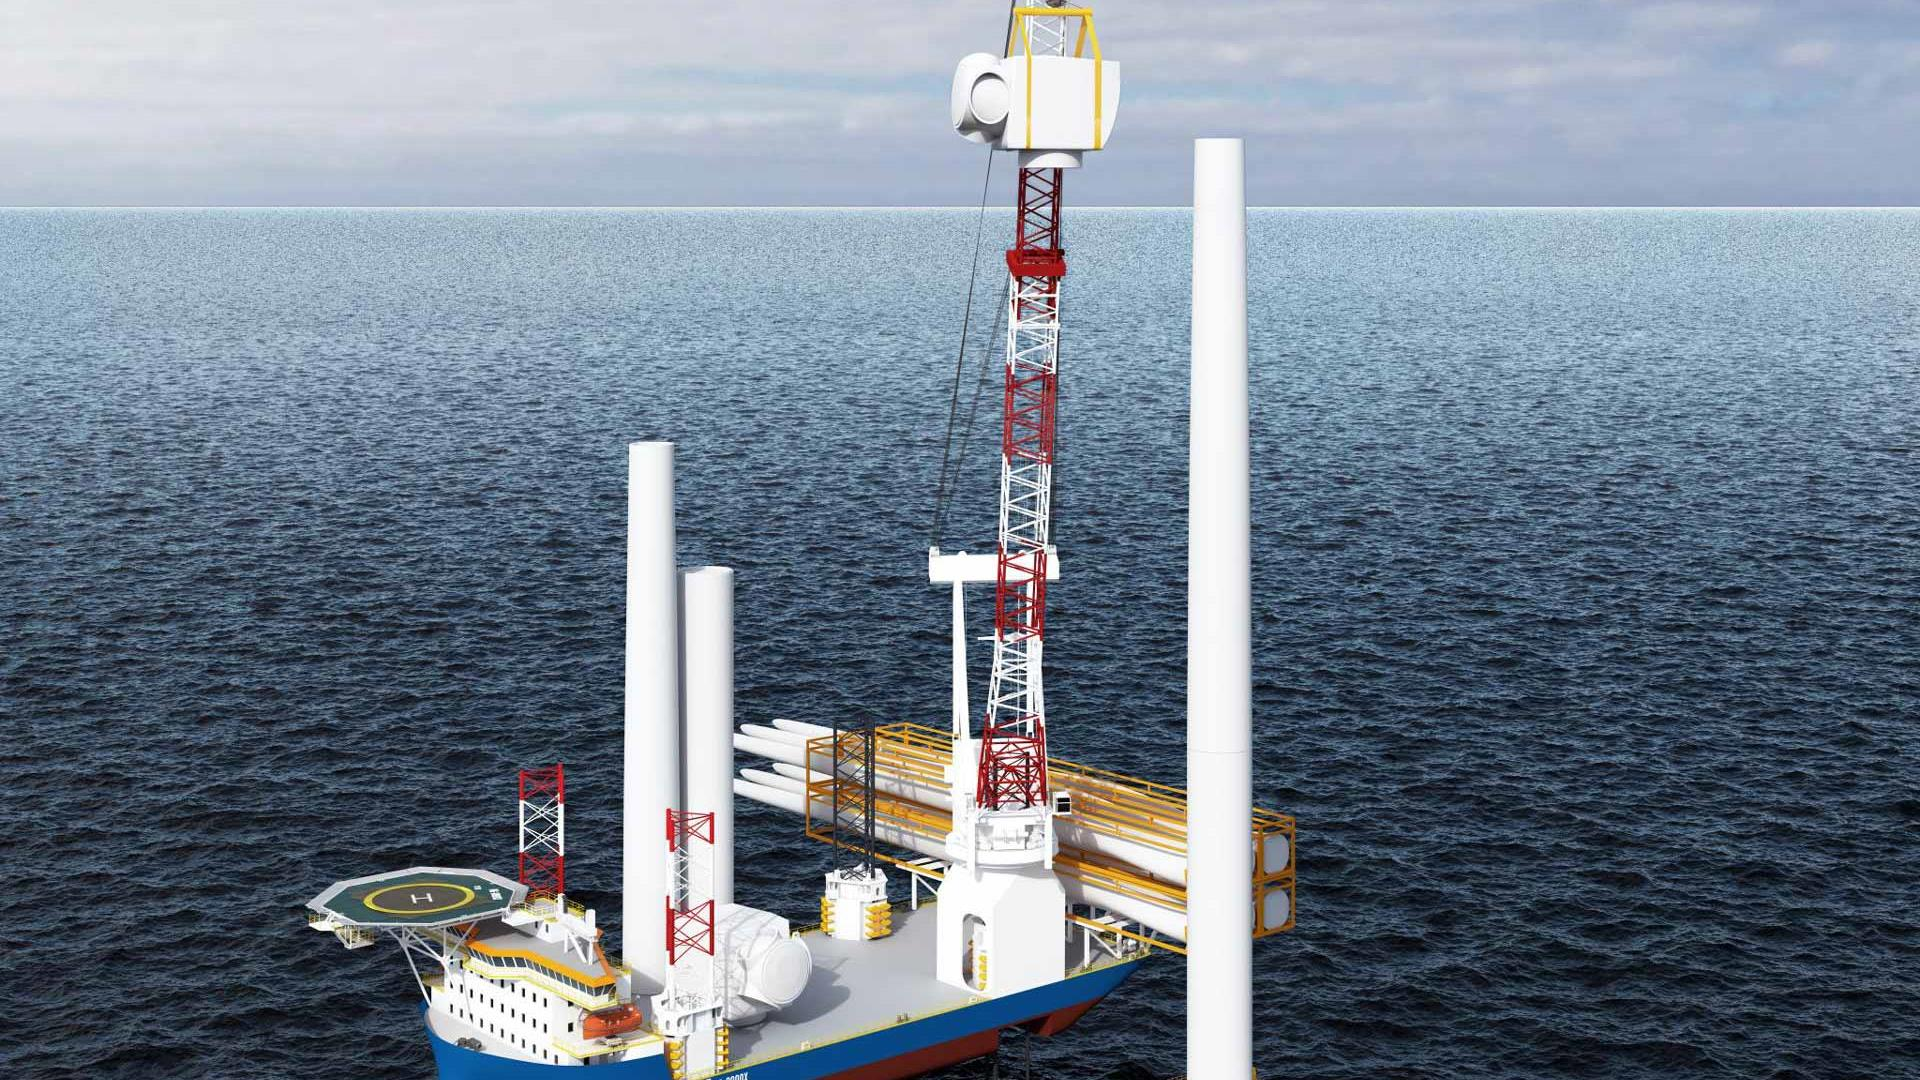 NG8000X offshore windmill installation